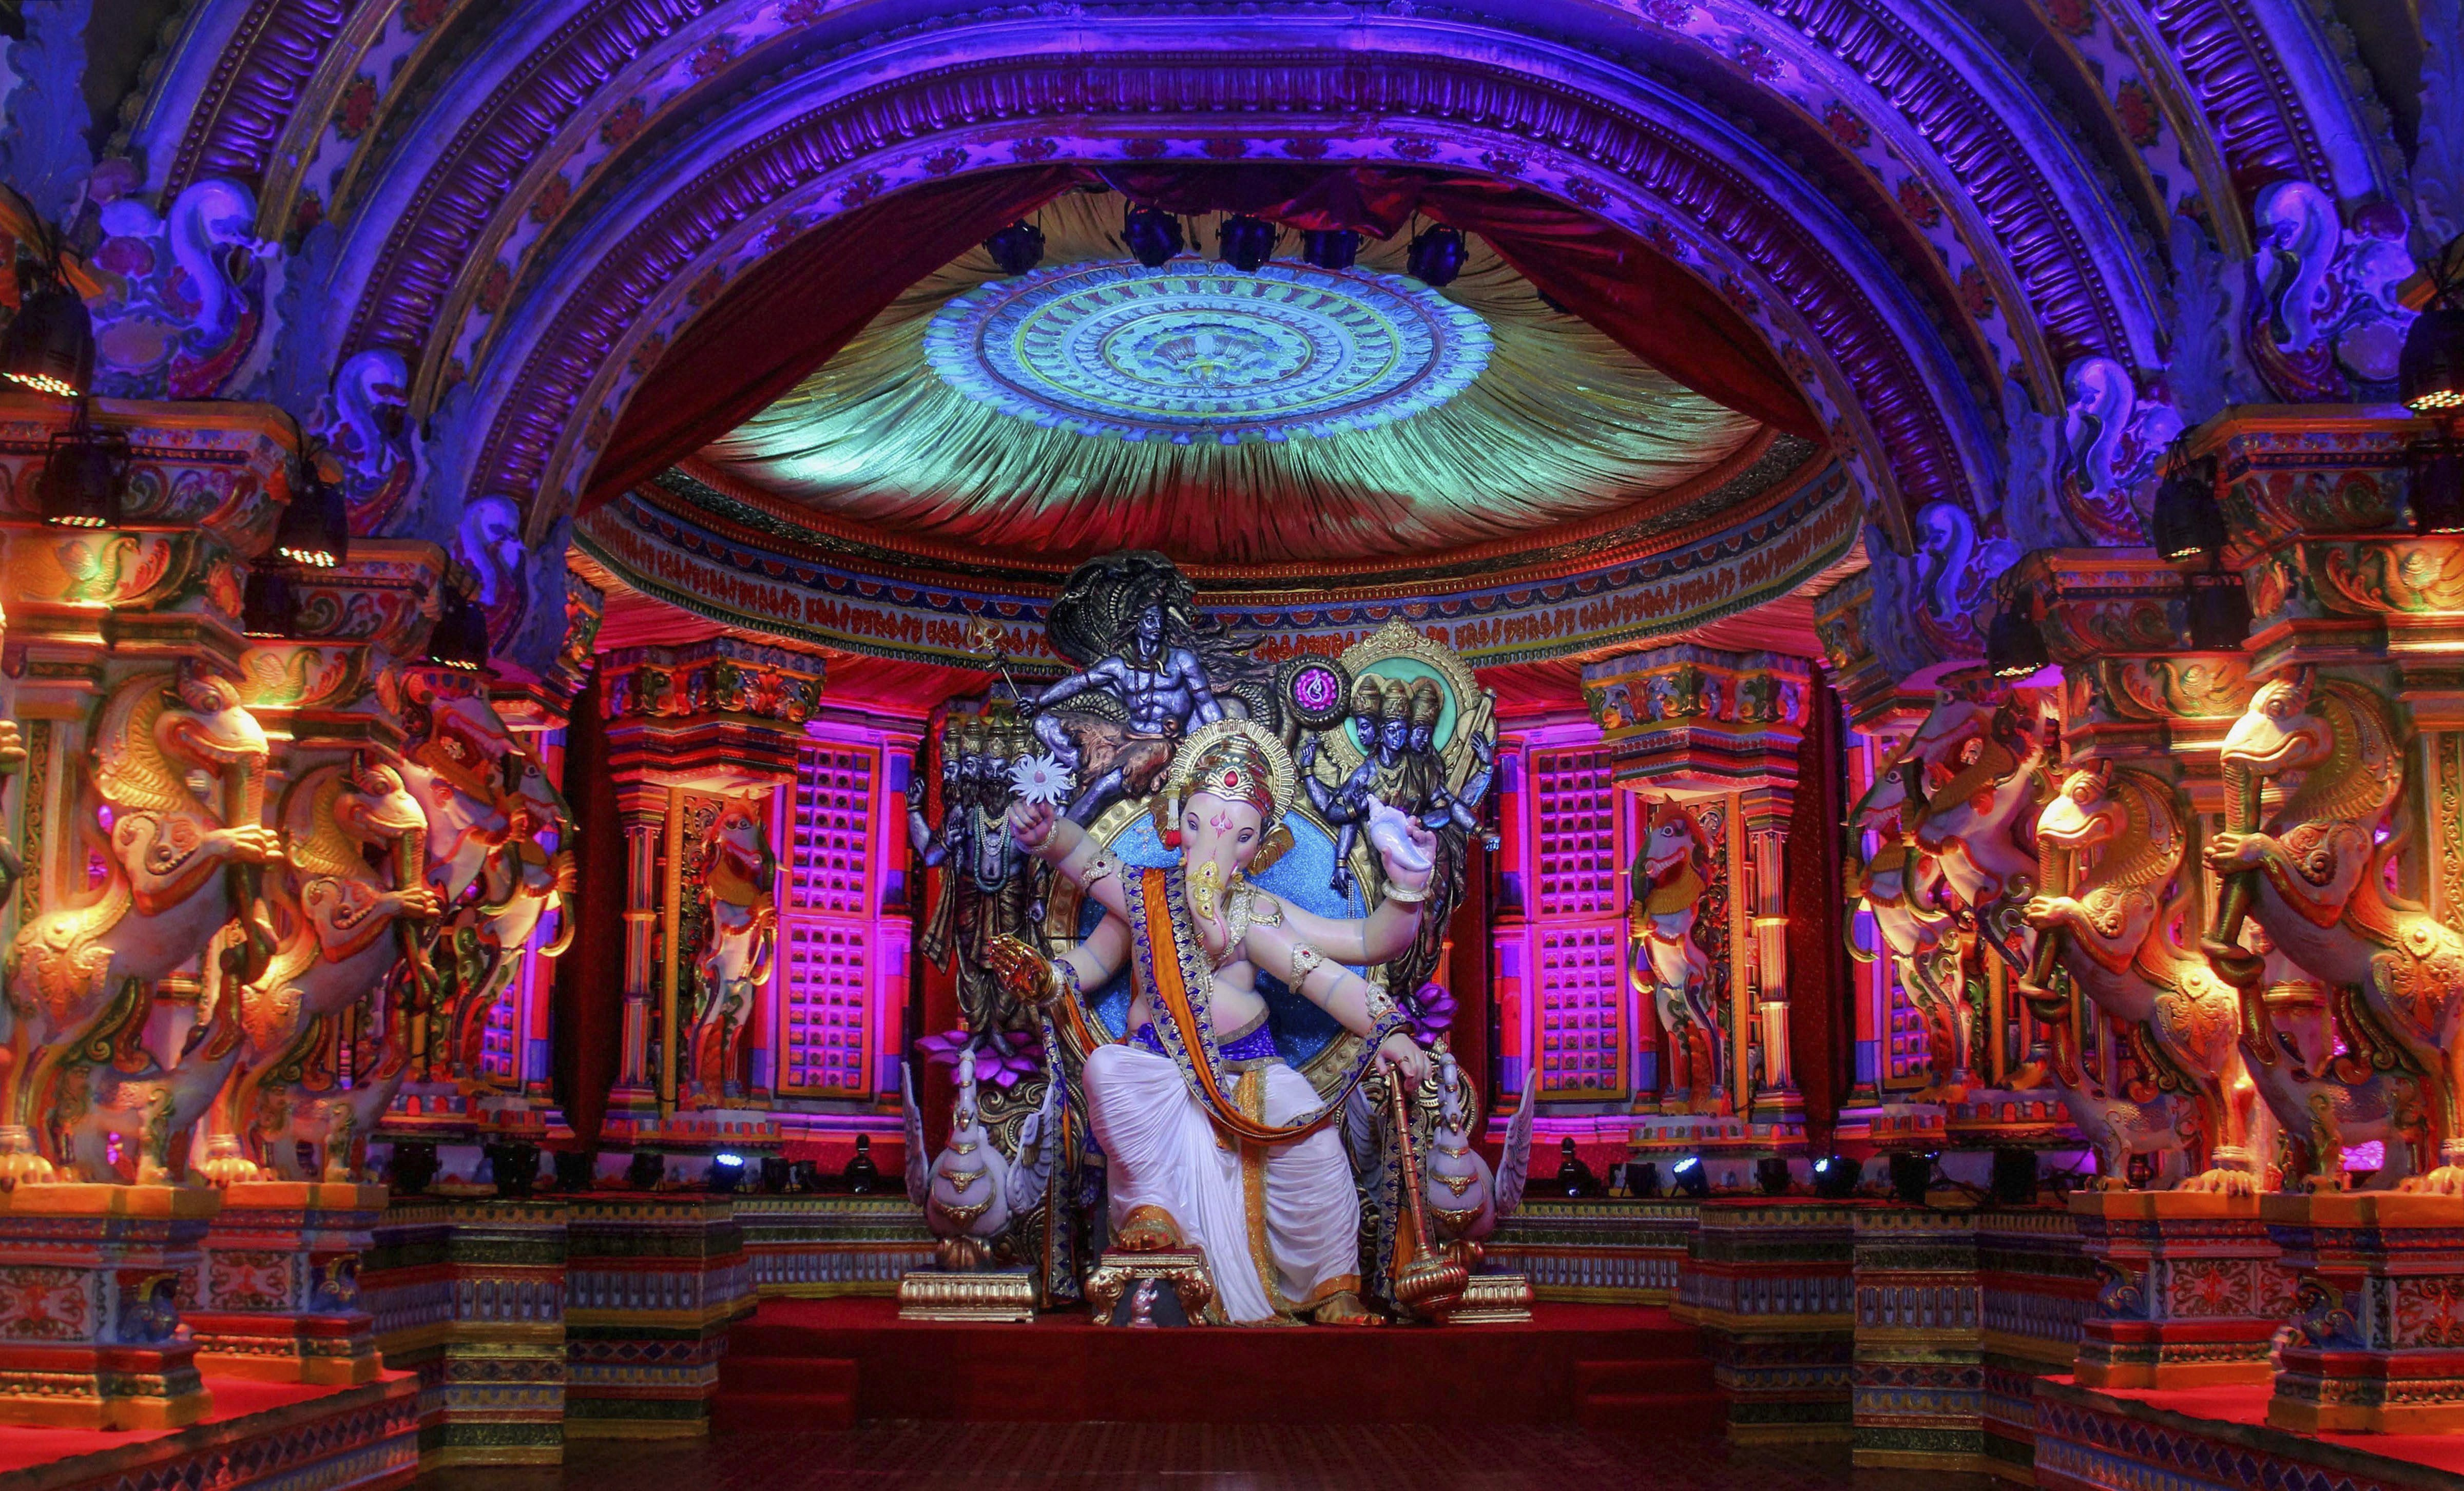 The first look of 'Chintamani 2018' on the eve of Ganesh Chaturthi festival, at Chinchpokli in Mumbai - PTI